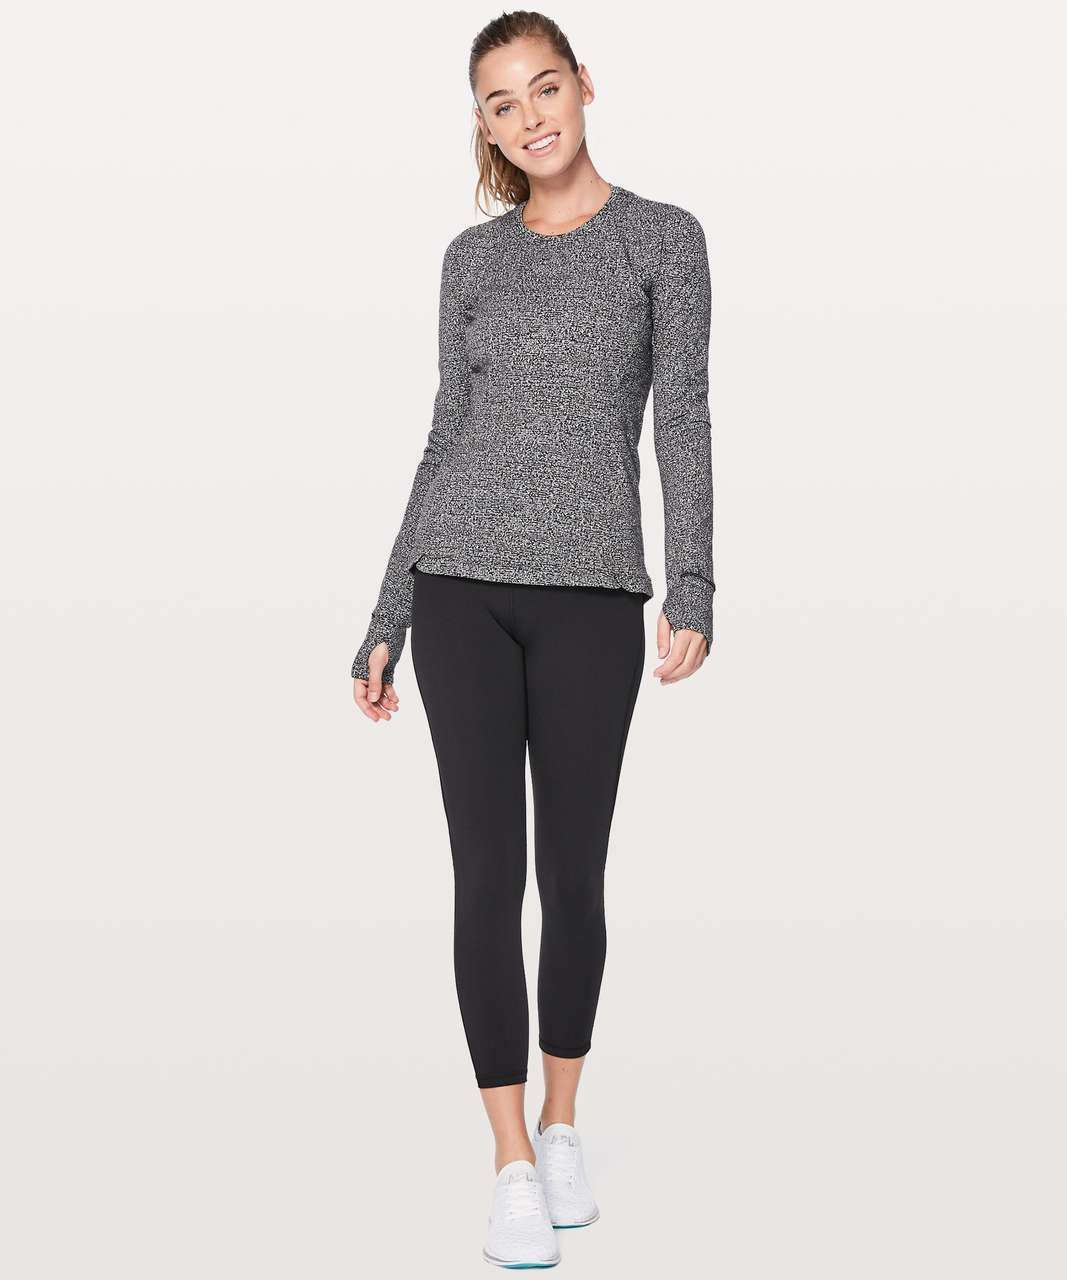 Lululemon Runderful Long Sleeve - Reconnect Jacquard Running Luon White Black